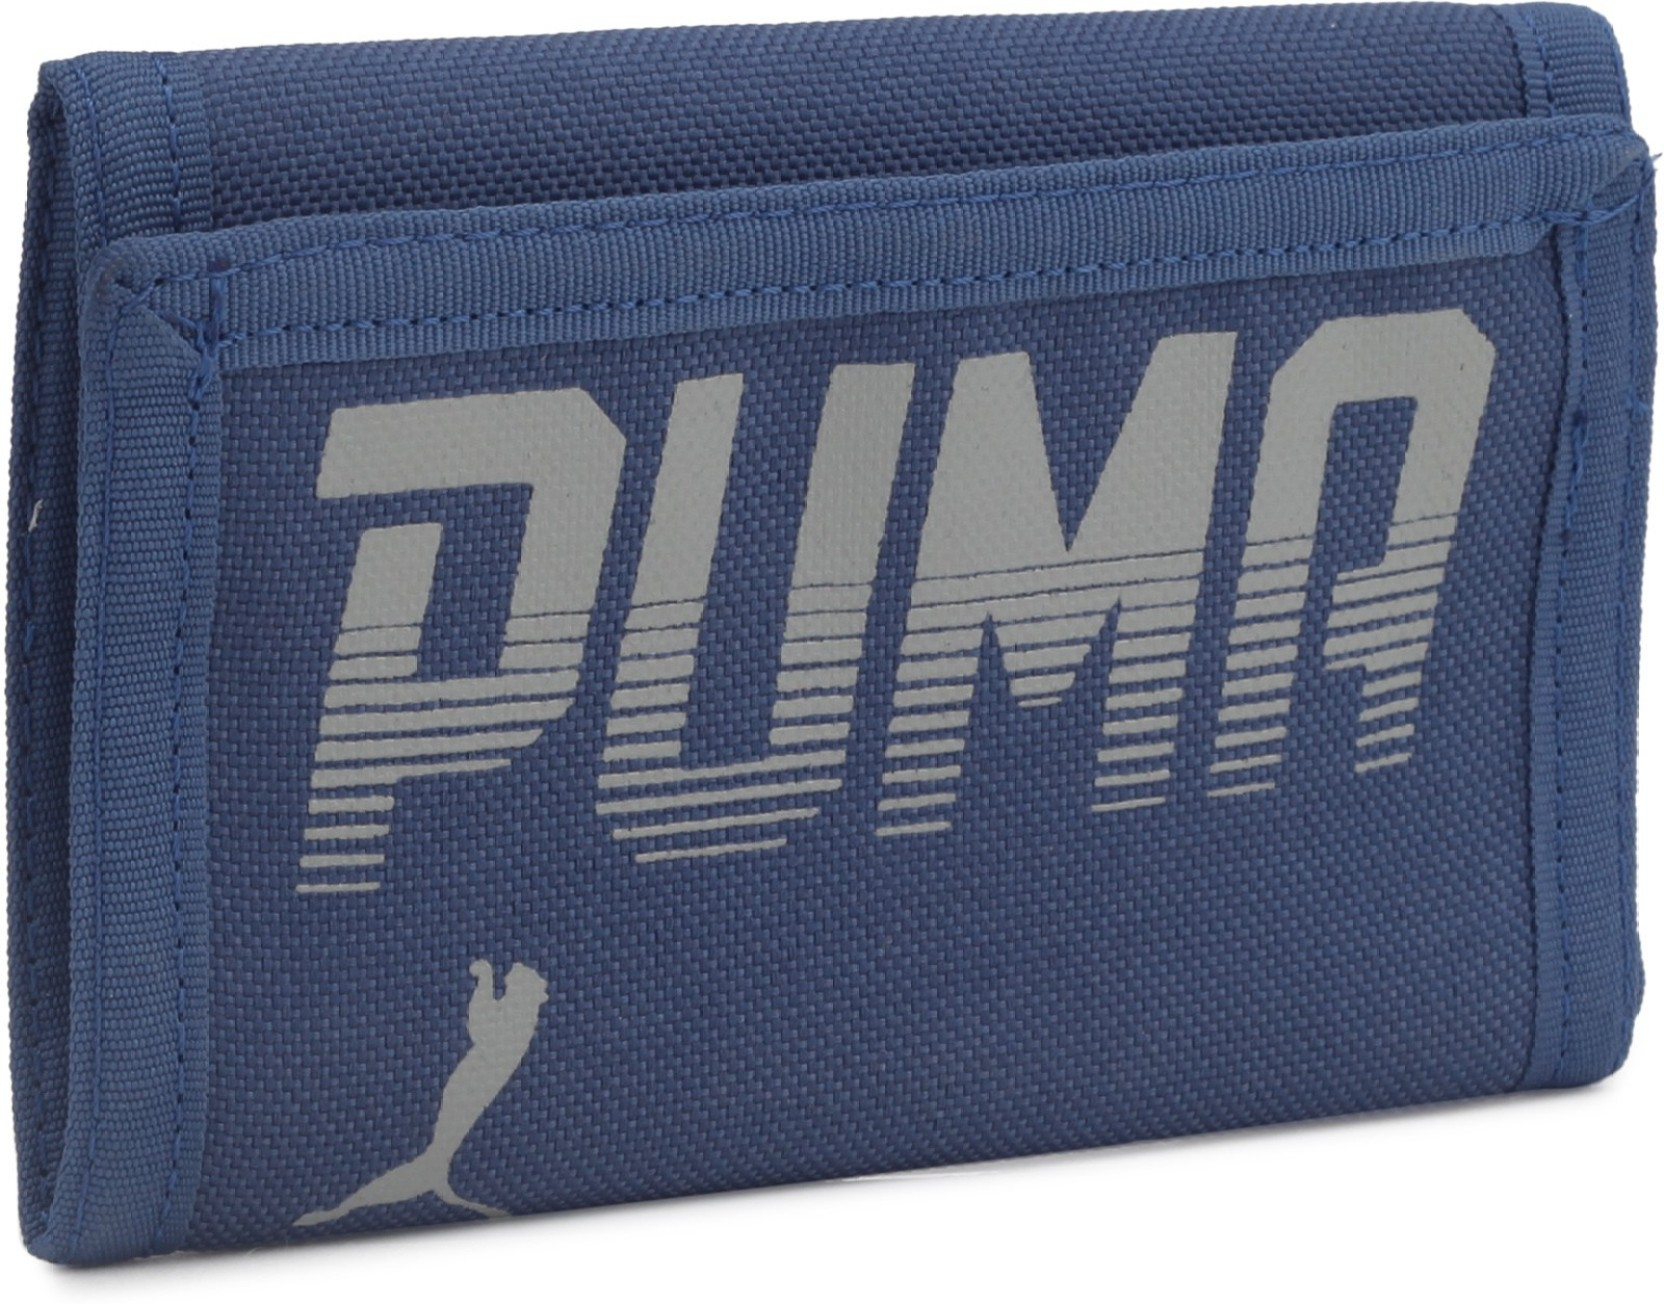 Puma Men Casual Blue Grey Fabric Wallet Limoges Price In India Musi White Nokha Sneakers Women Putih 39 Home